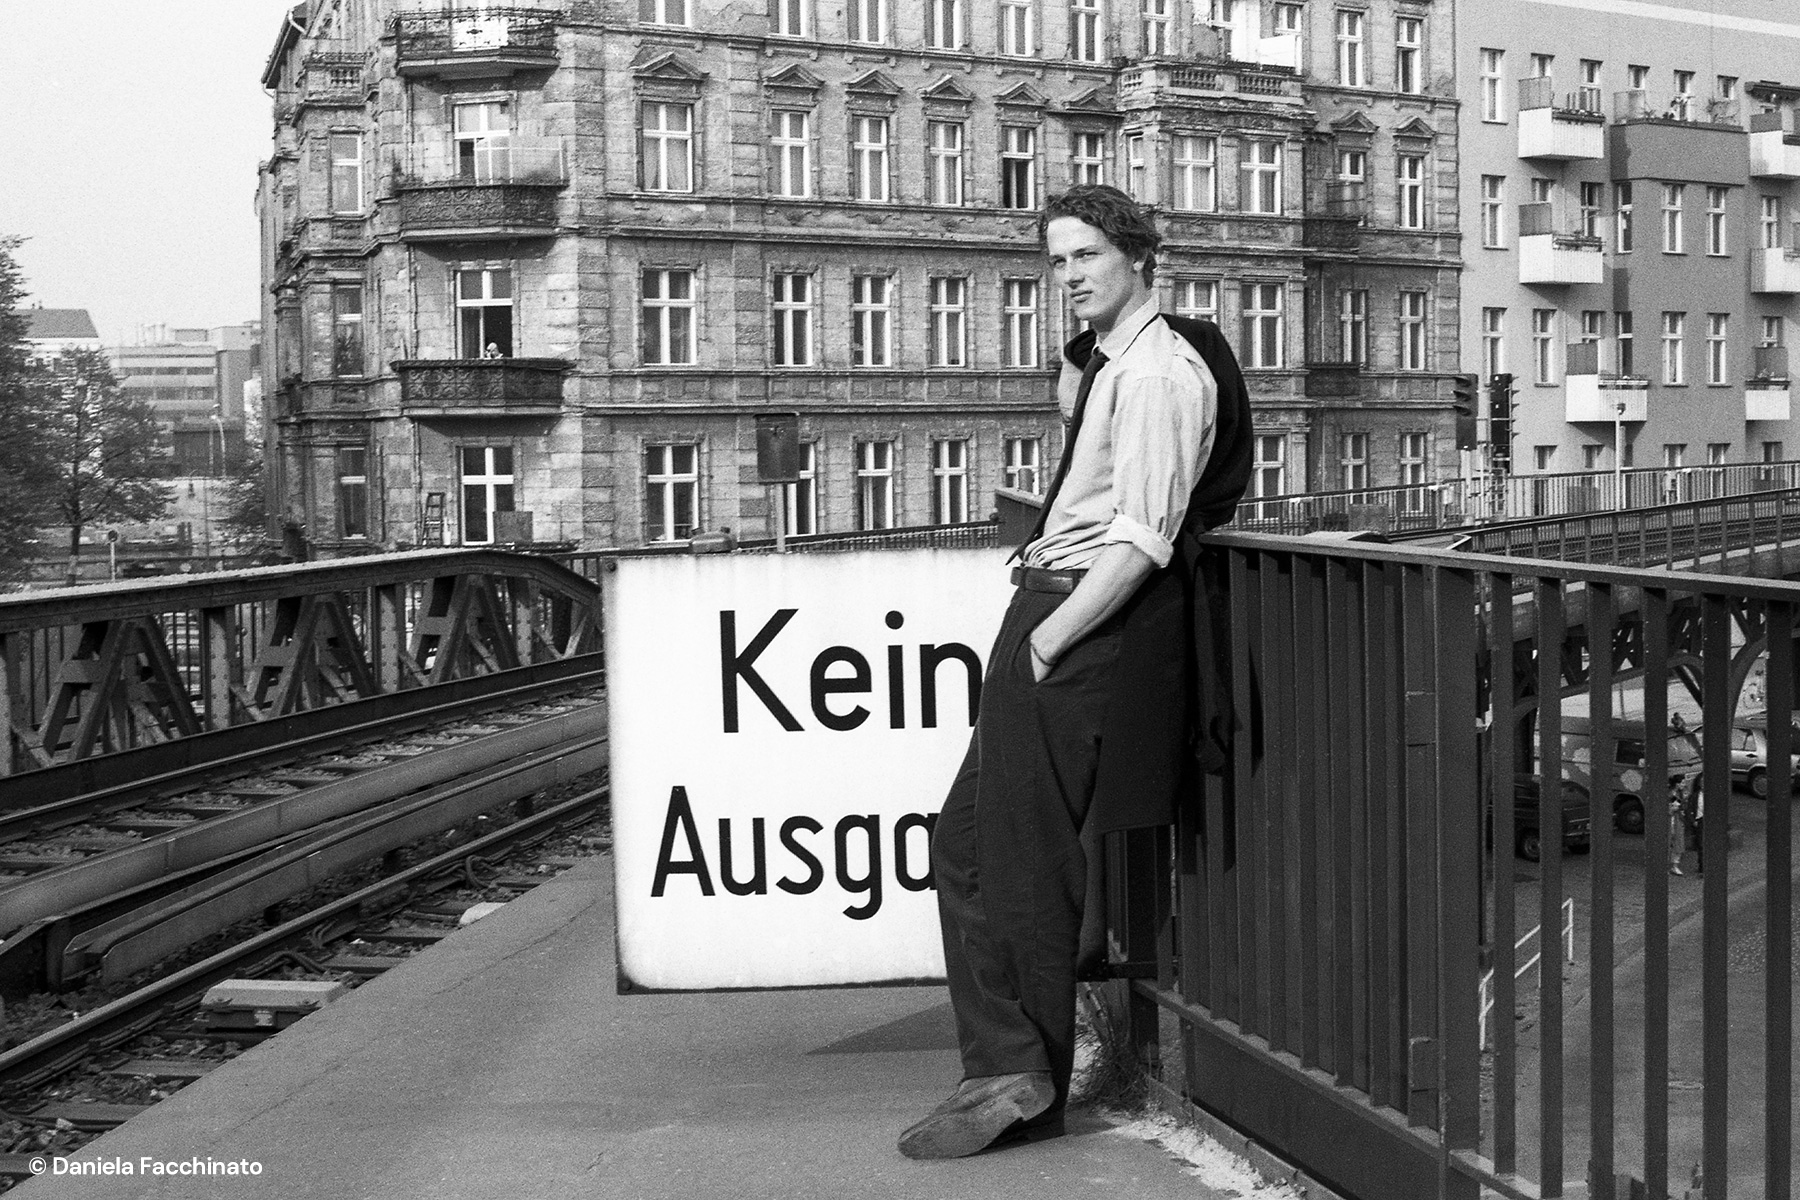 West Berlin 1988. Elevated railway. Adv. campaign for Massimo Osti